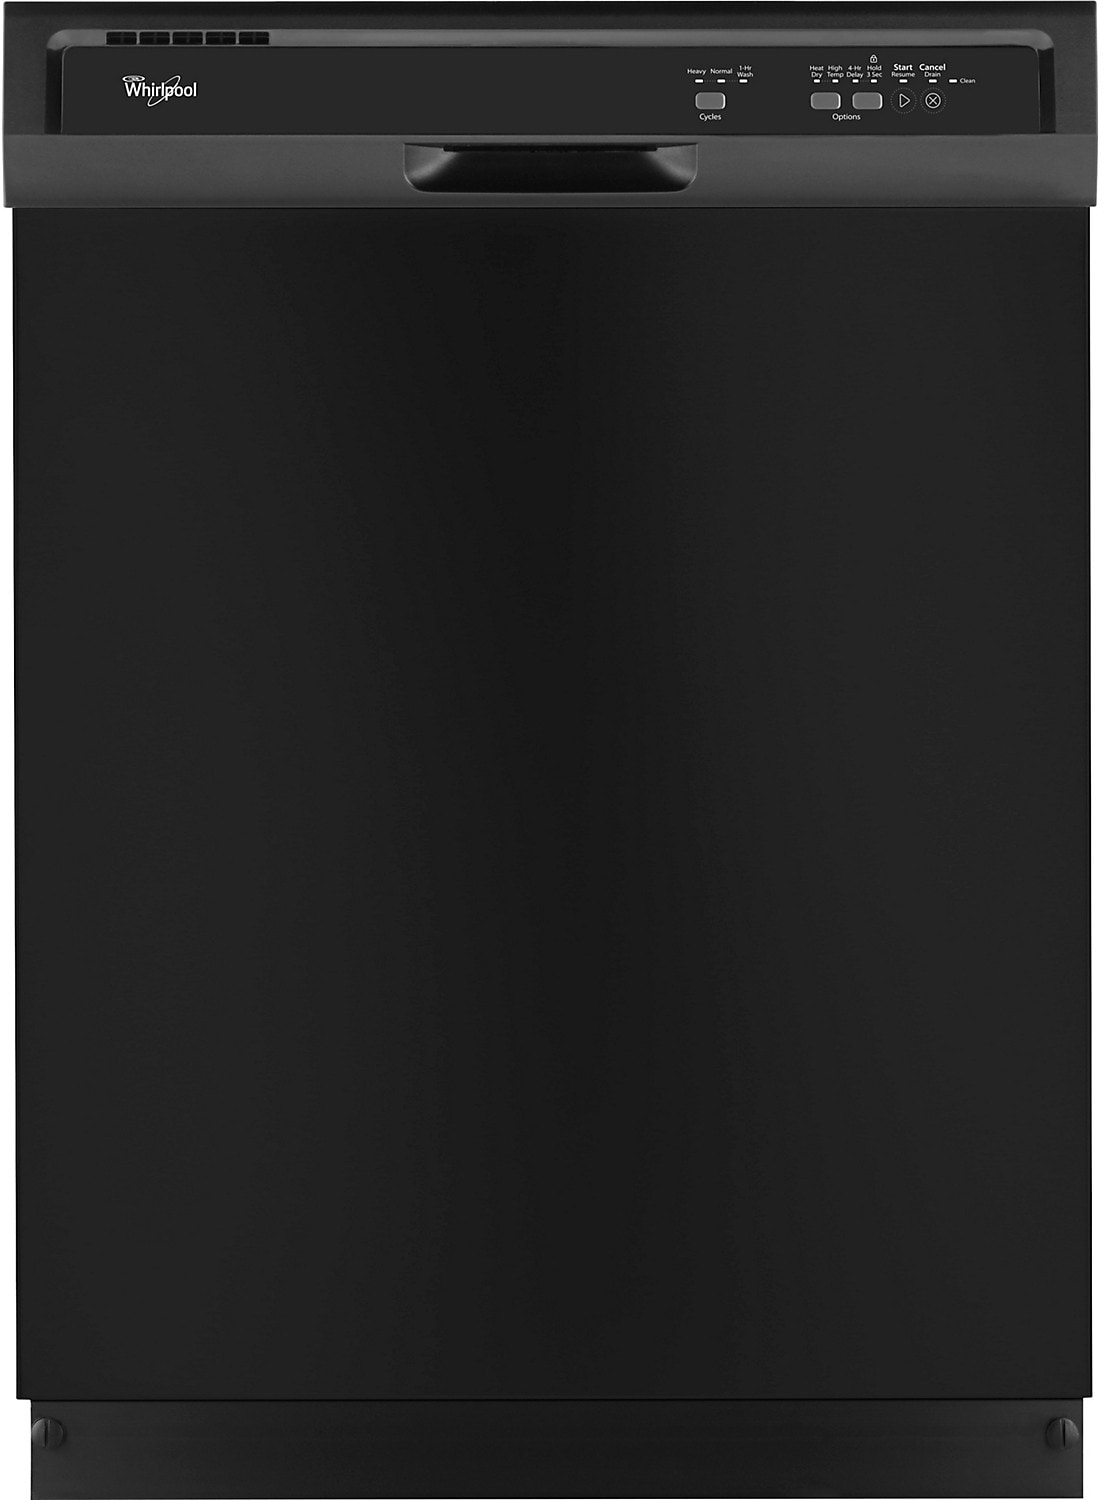 Whirlpool® Built-In Dishwasher - Black